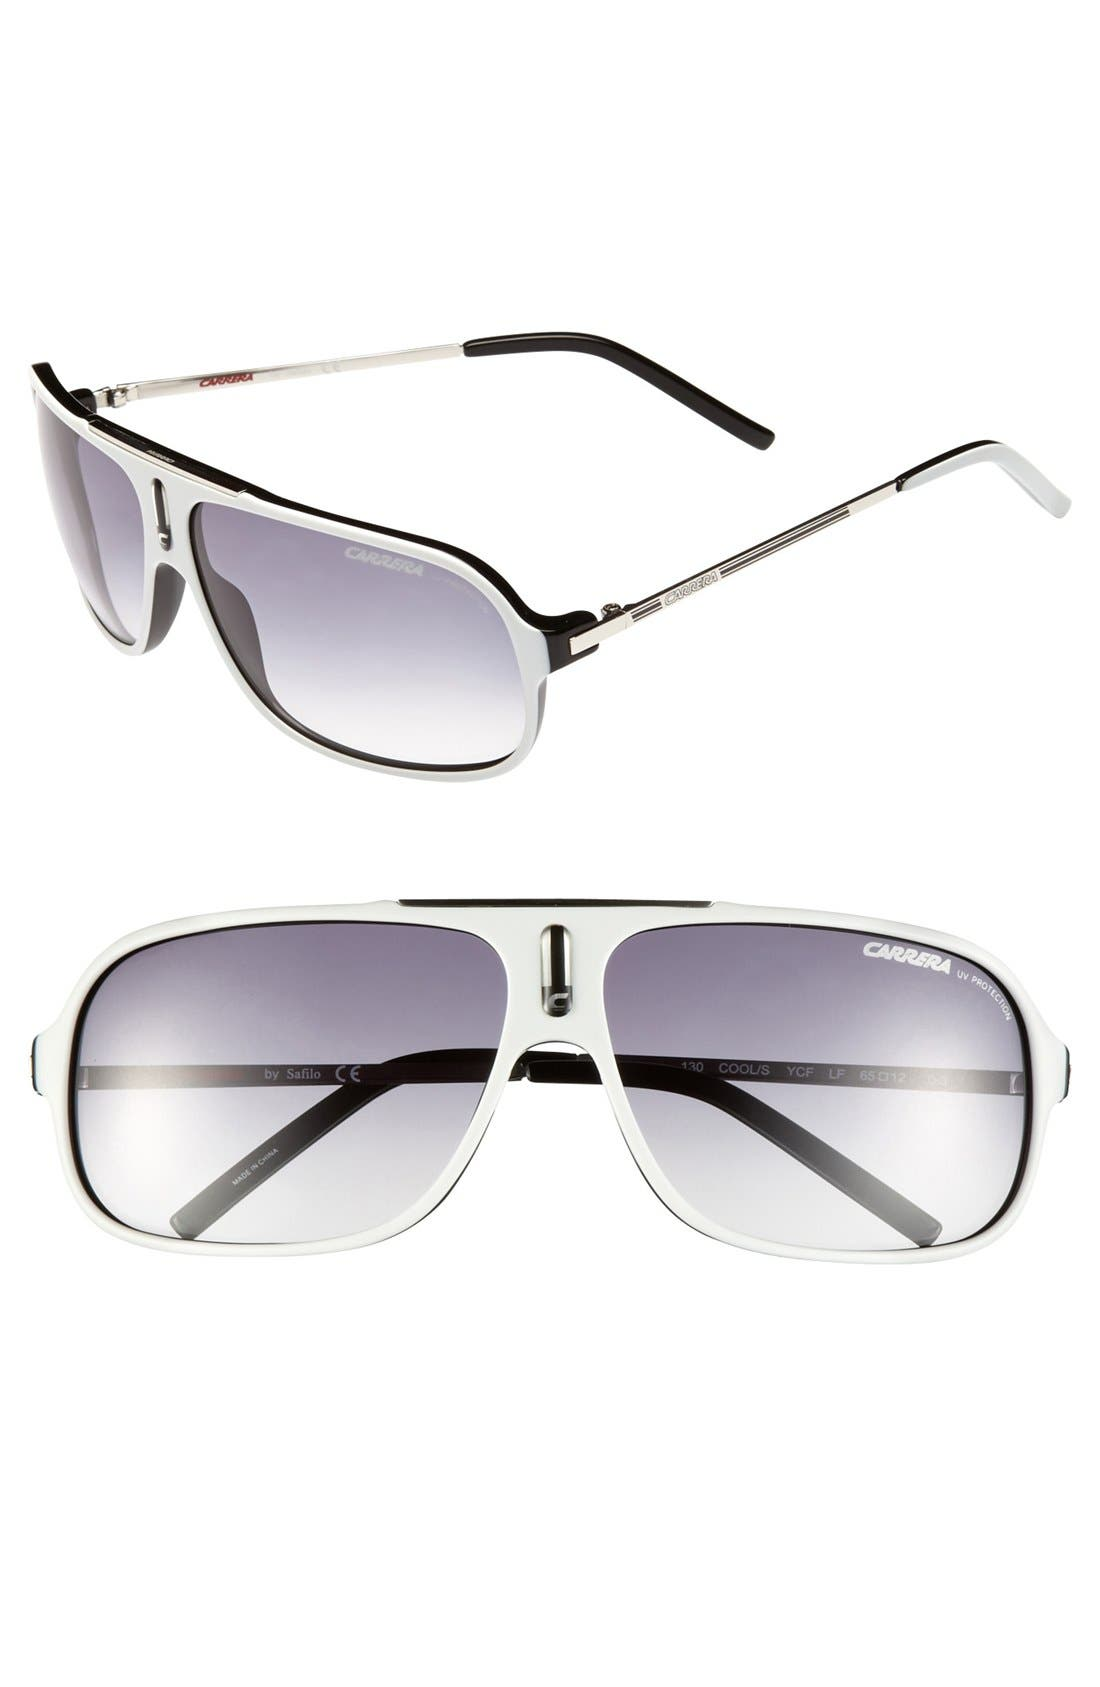 Main Image - Carrera Eyewear 'Cool' 61mm Vintage Inspired Aviator Sunglasses